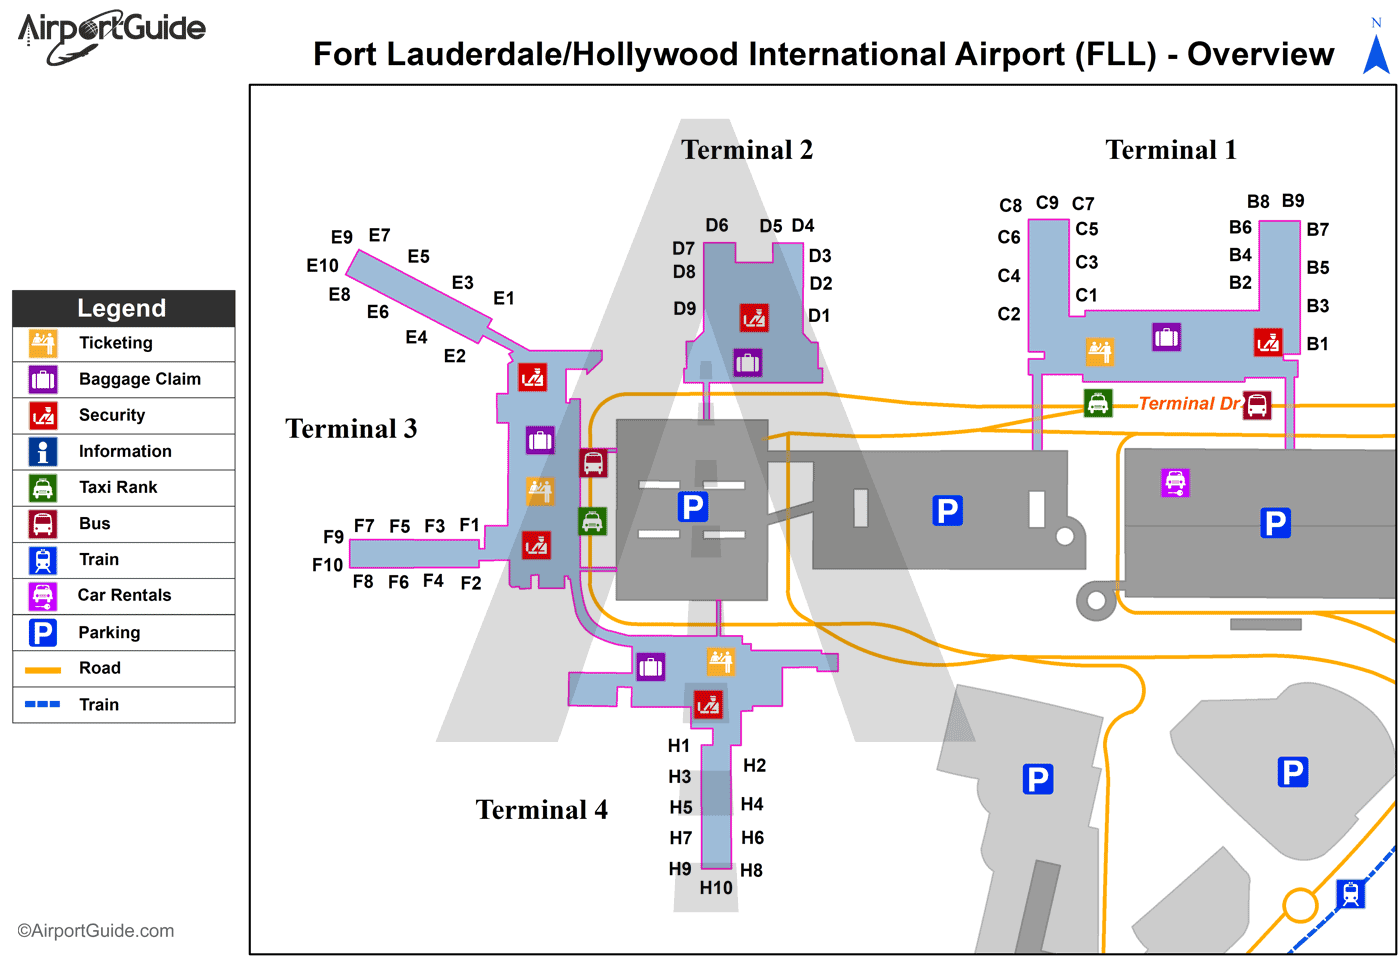 Fort Lauderdale - Fort Lauderdale/Hollywood International (FLL) Airport Terminal Map - Overview